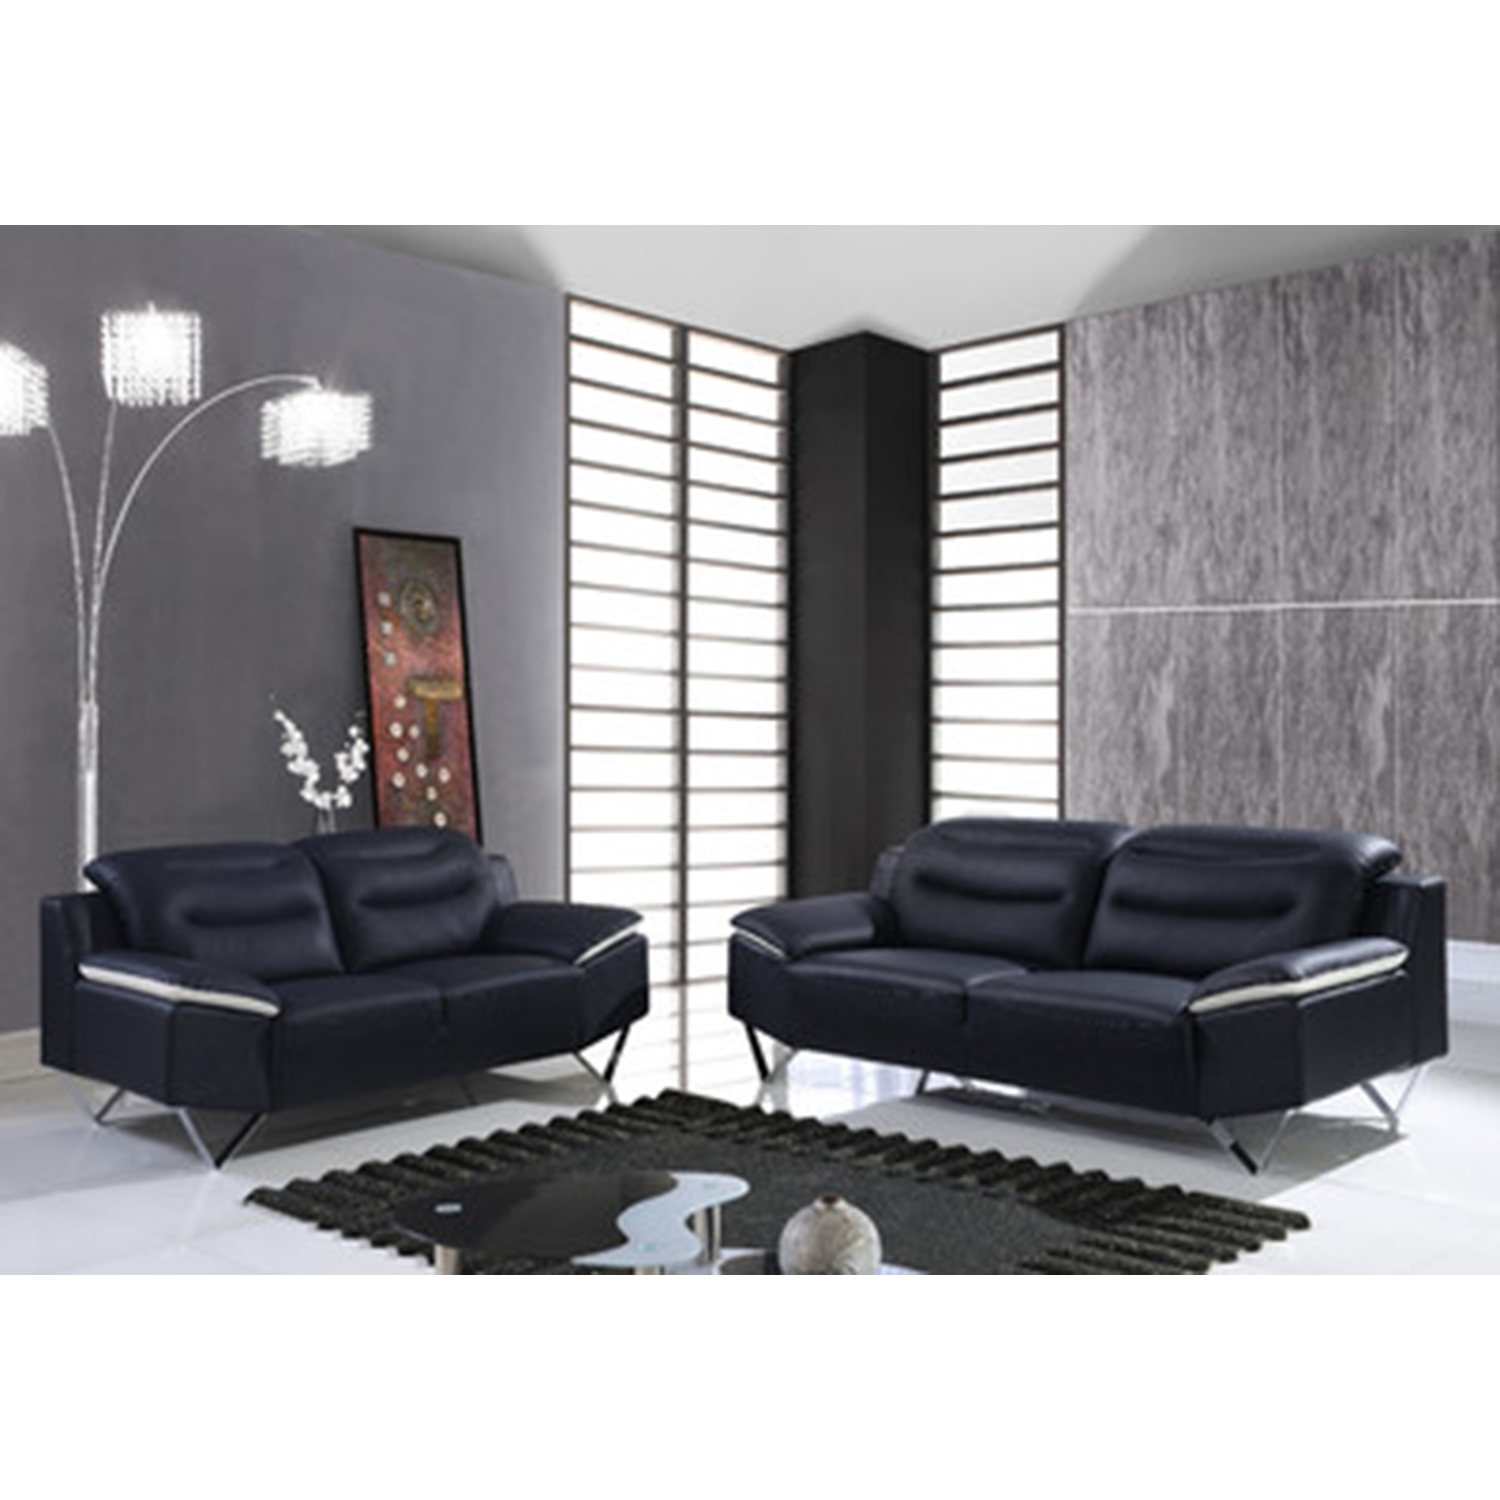 Karen Leather Sofa Set in Black